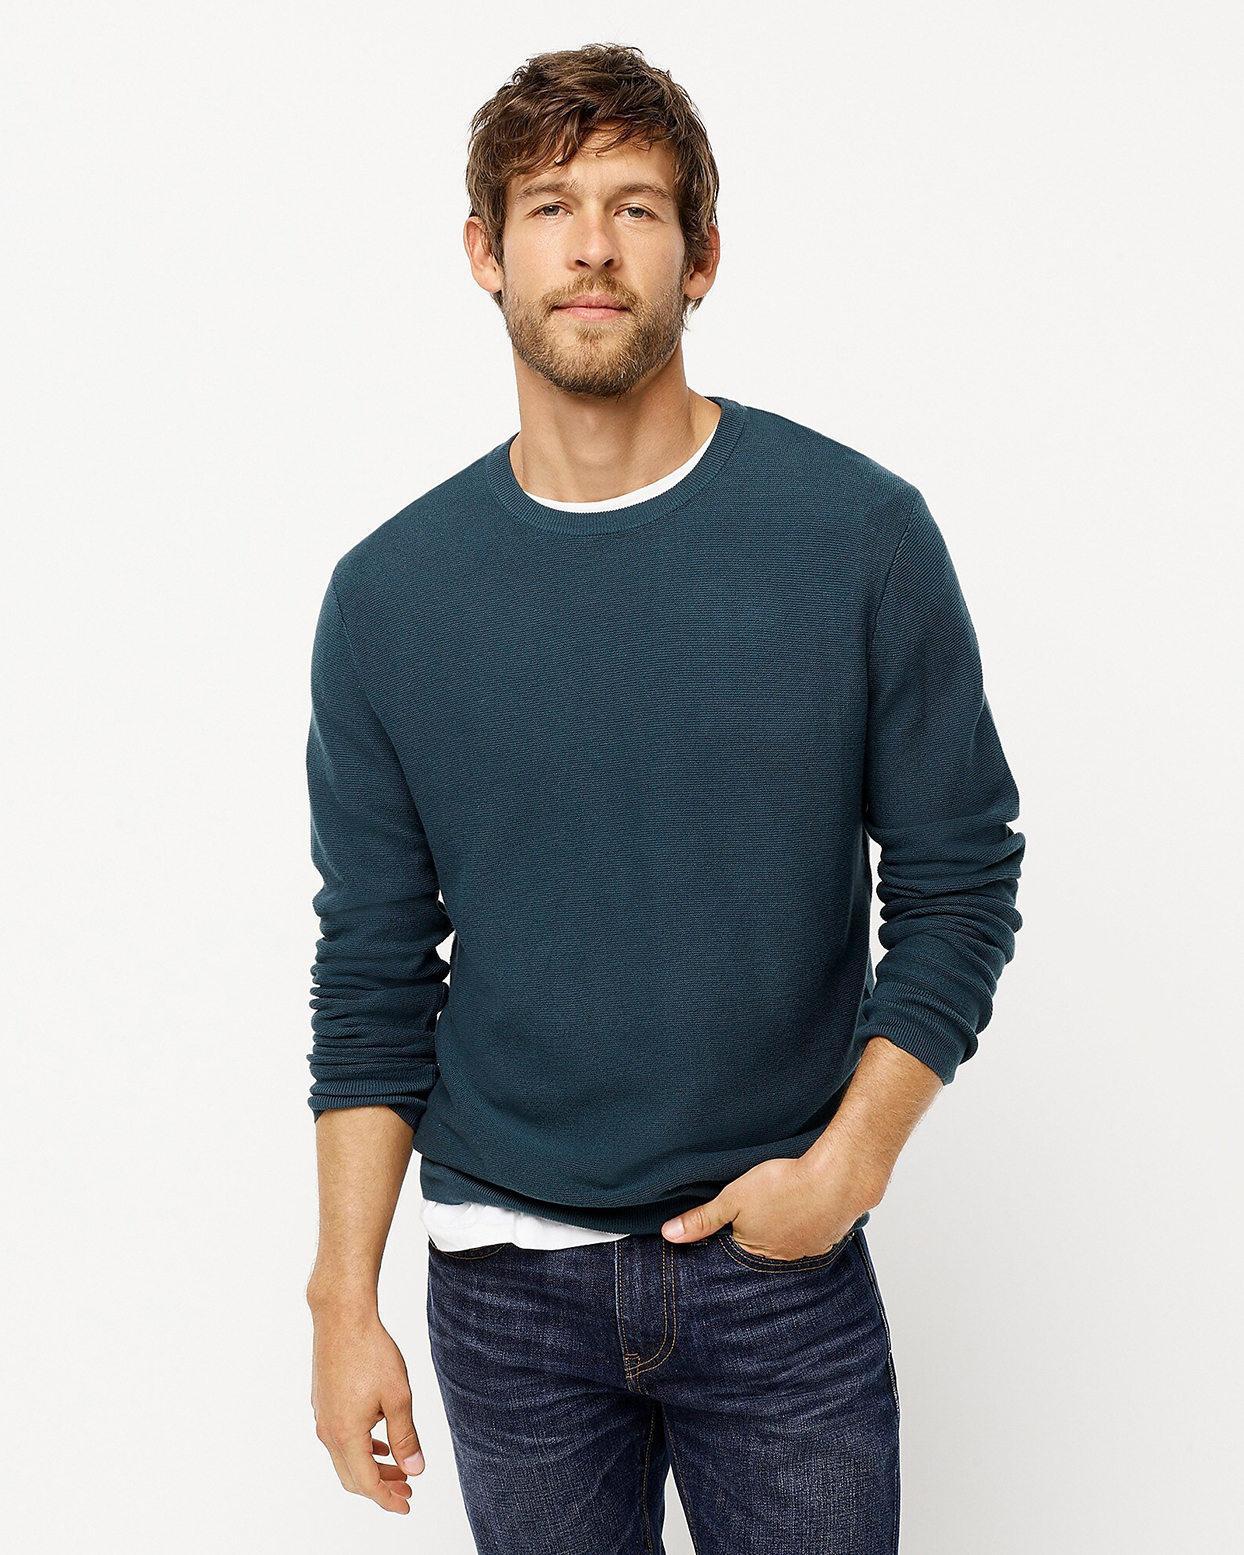 J. Crew Cotton Crewneck Sweater